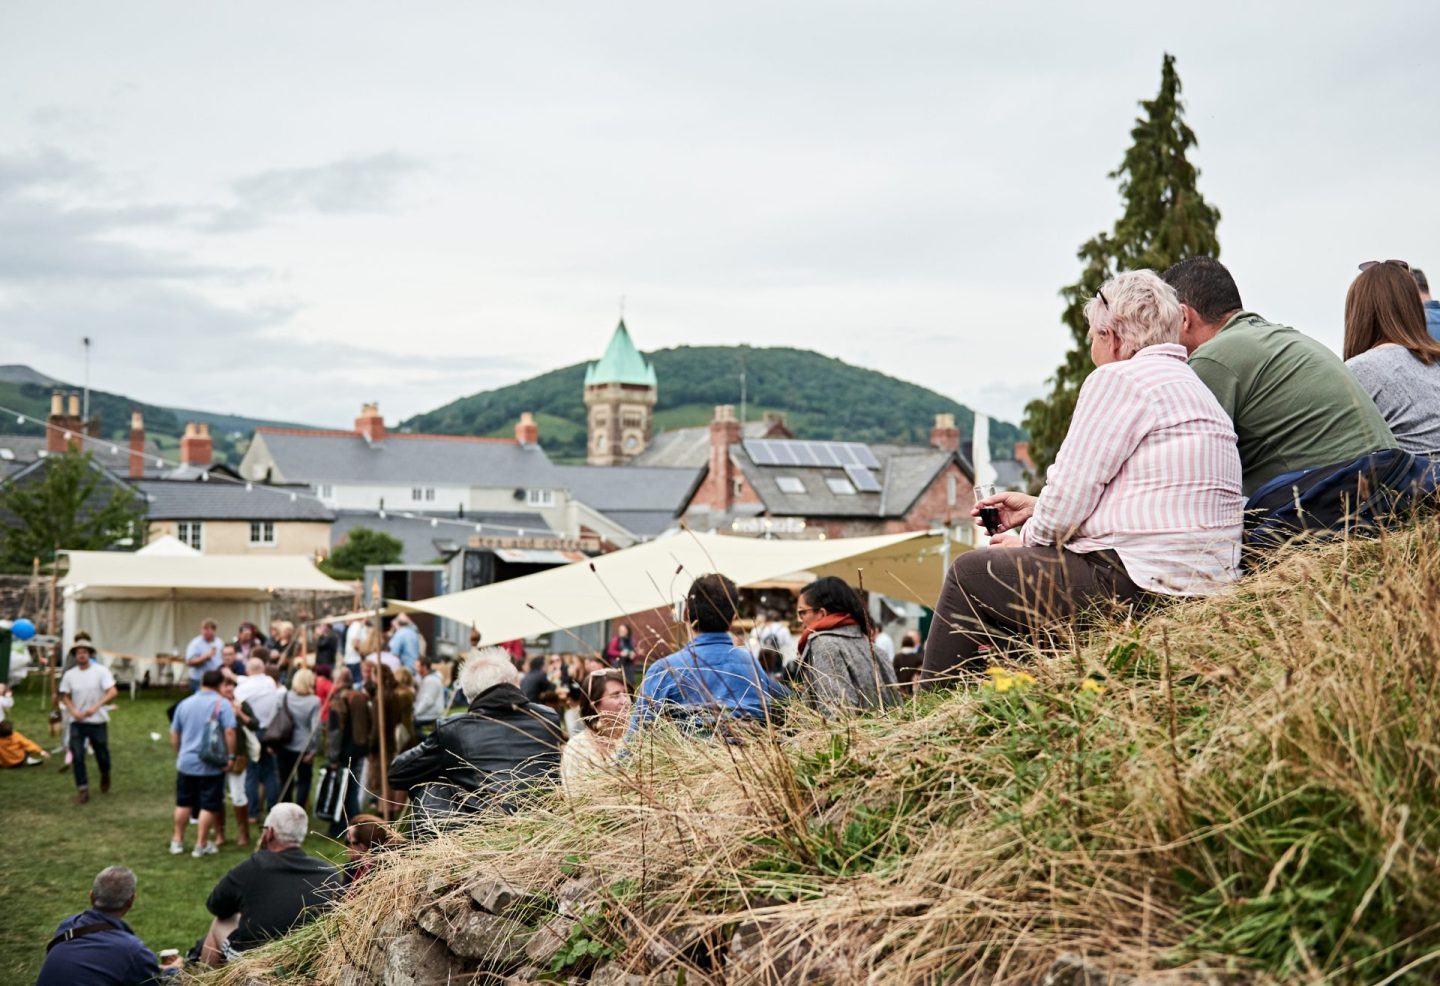 5 sustainable food talks you can watch for free at Abergavenny Food Festival 2019